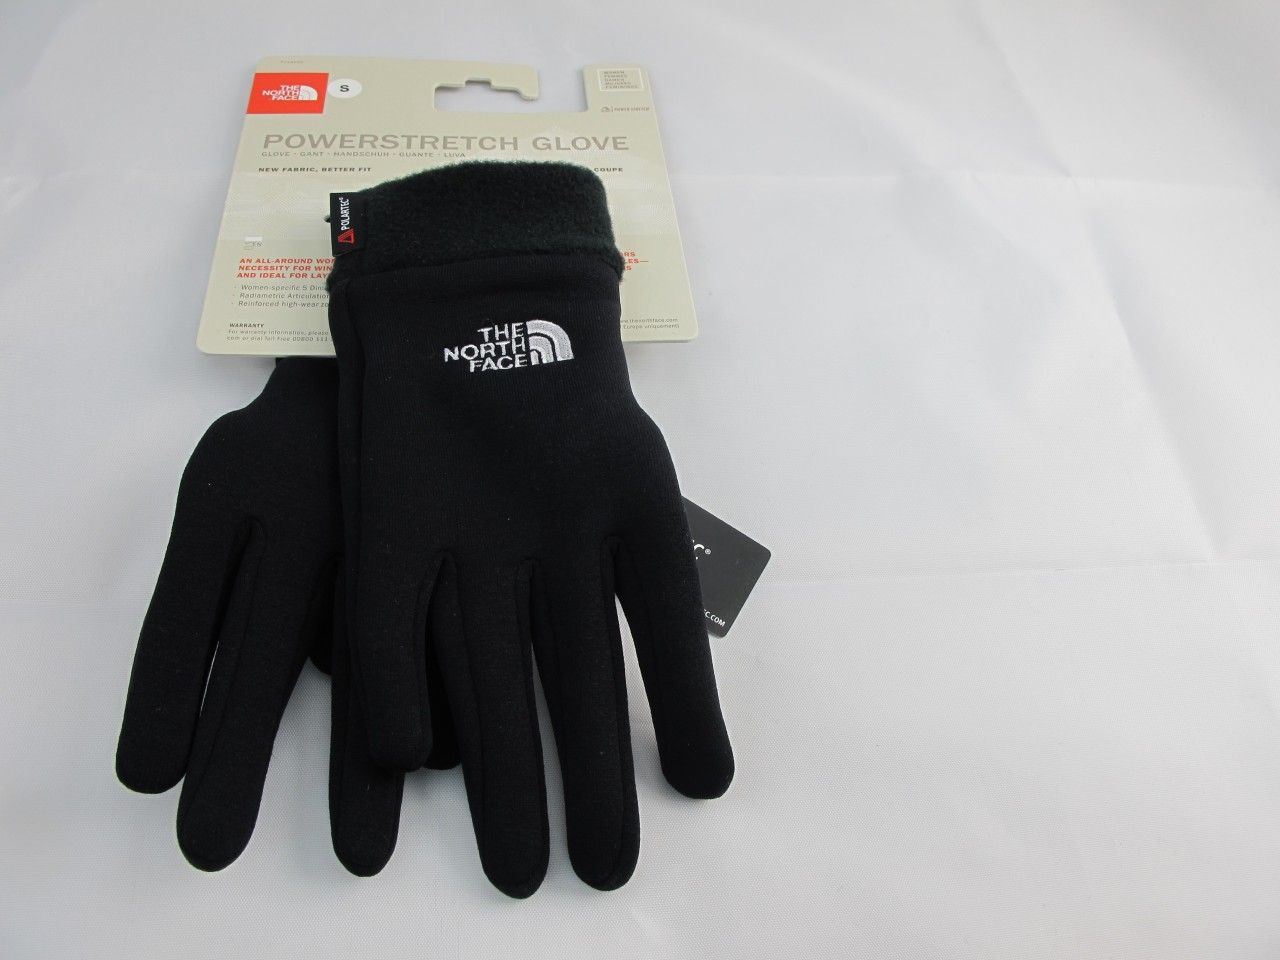 THE NORTH FACE POWERSTRETCH POLARTEC GLOVES GANTS HANDSCHUHE GUANTES SIZE L NEW.